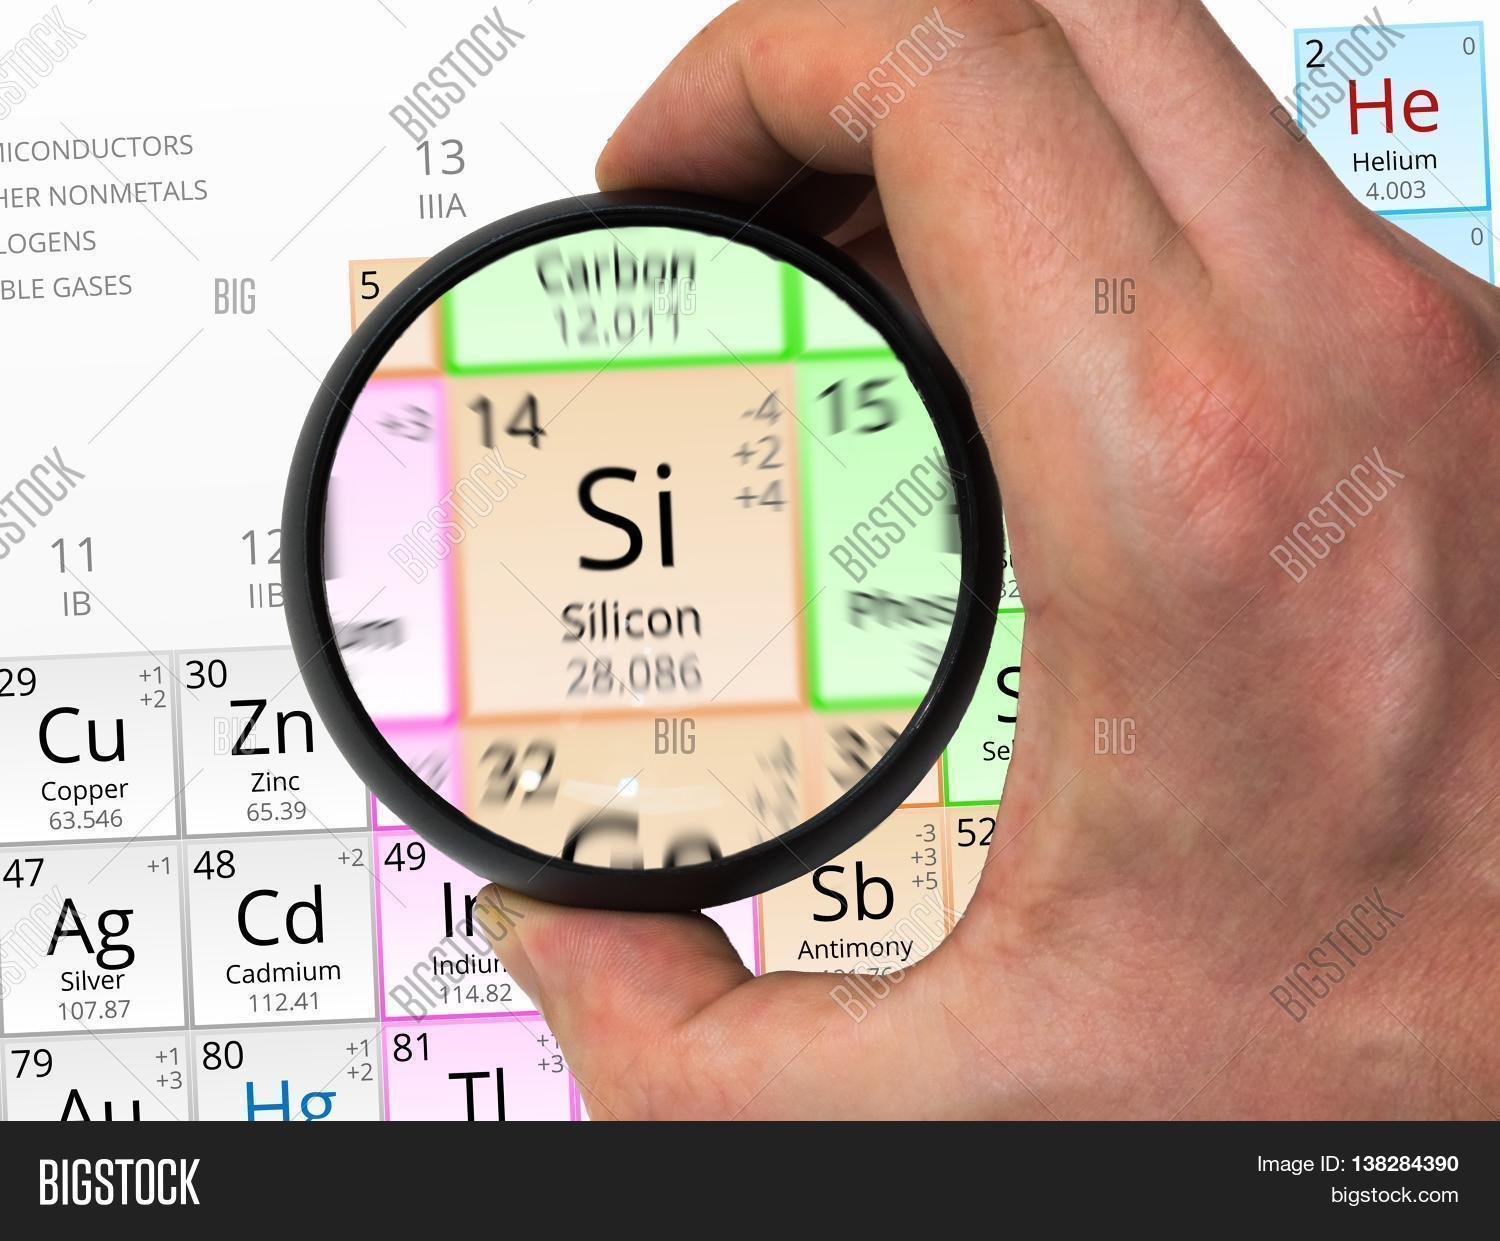 Silicon Symbol Si Image Photo Free Trial Bigstock